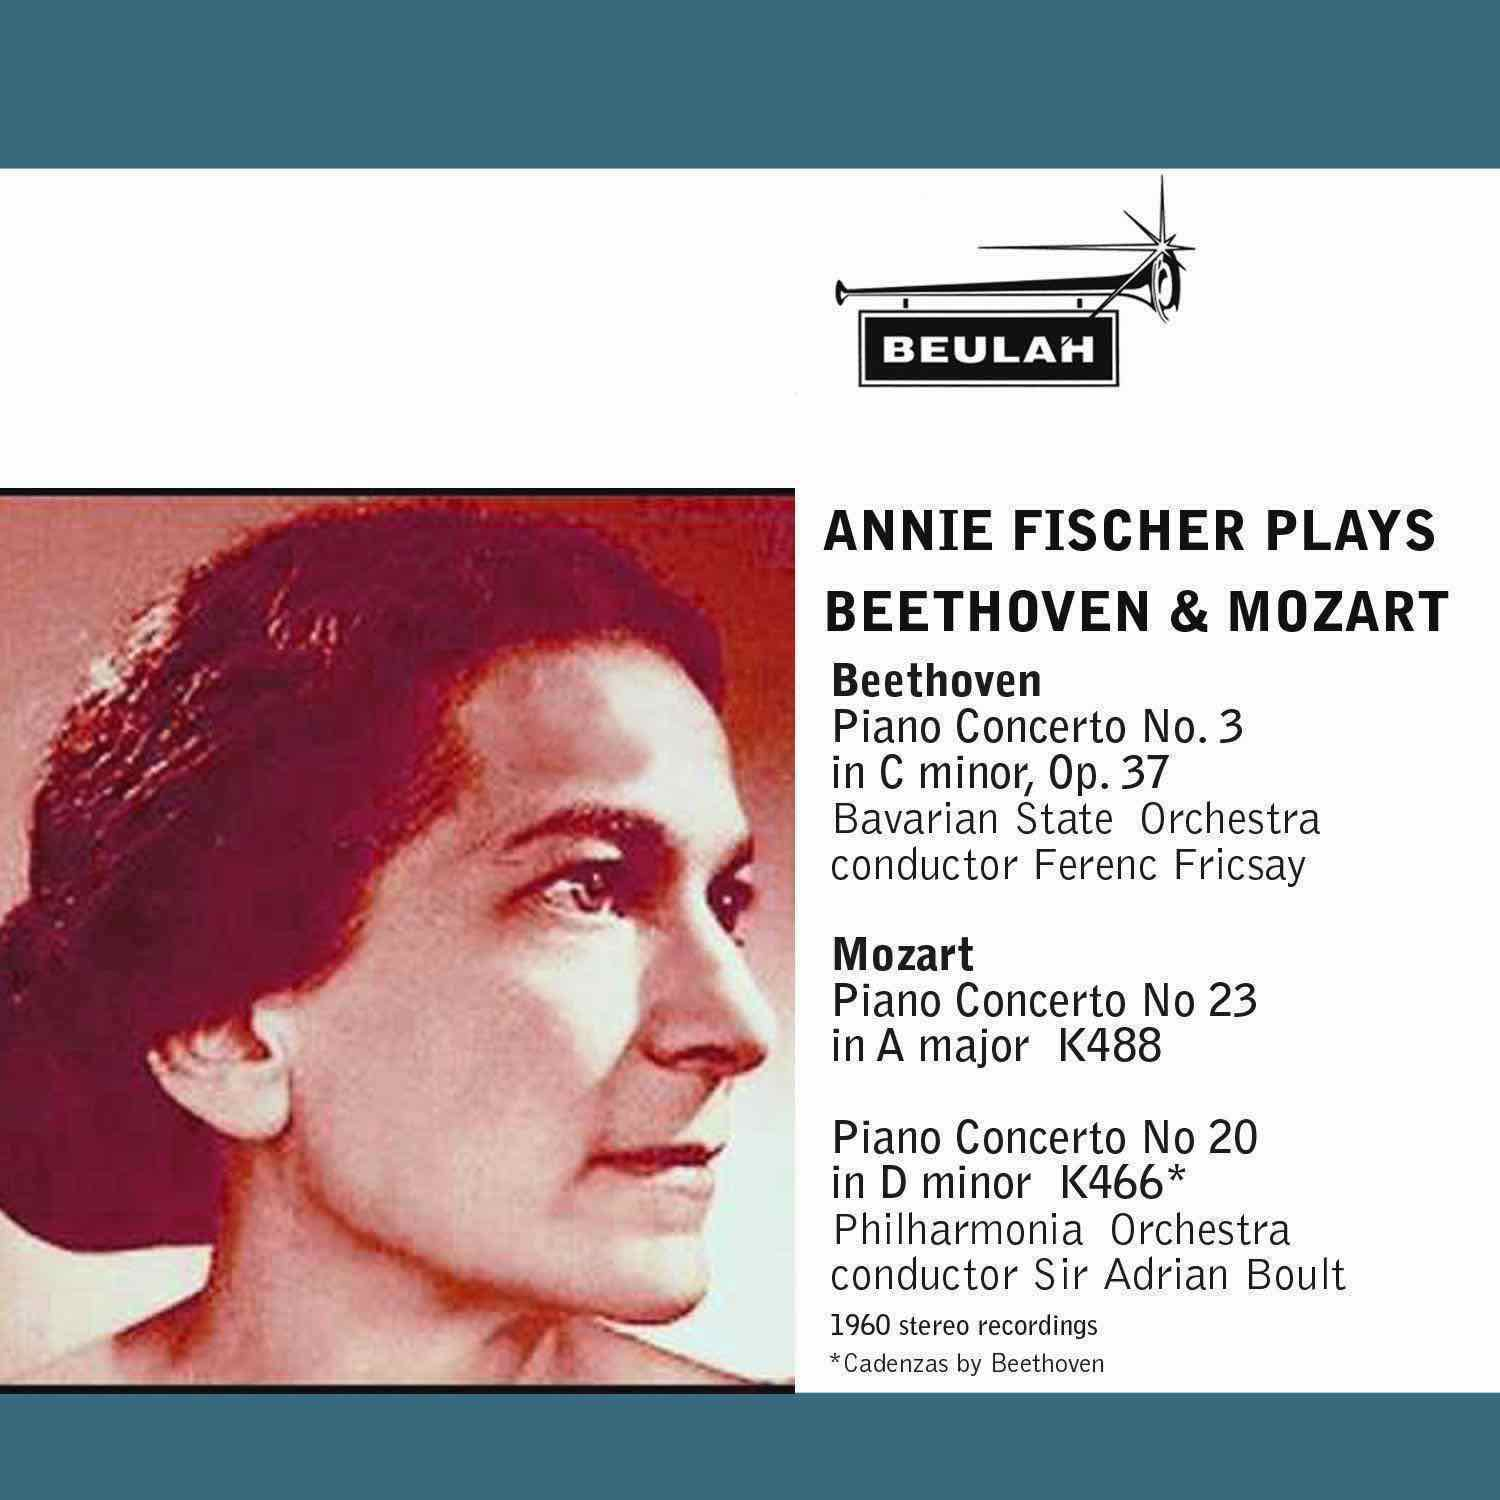 annie fischer plays beethoven and mozart